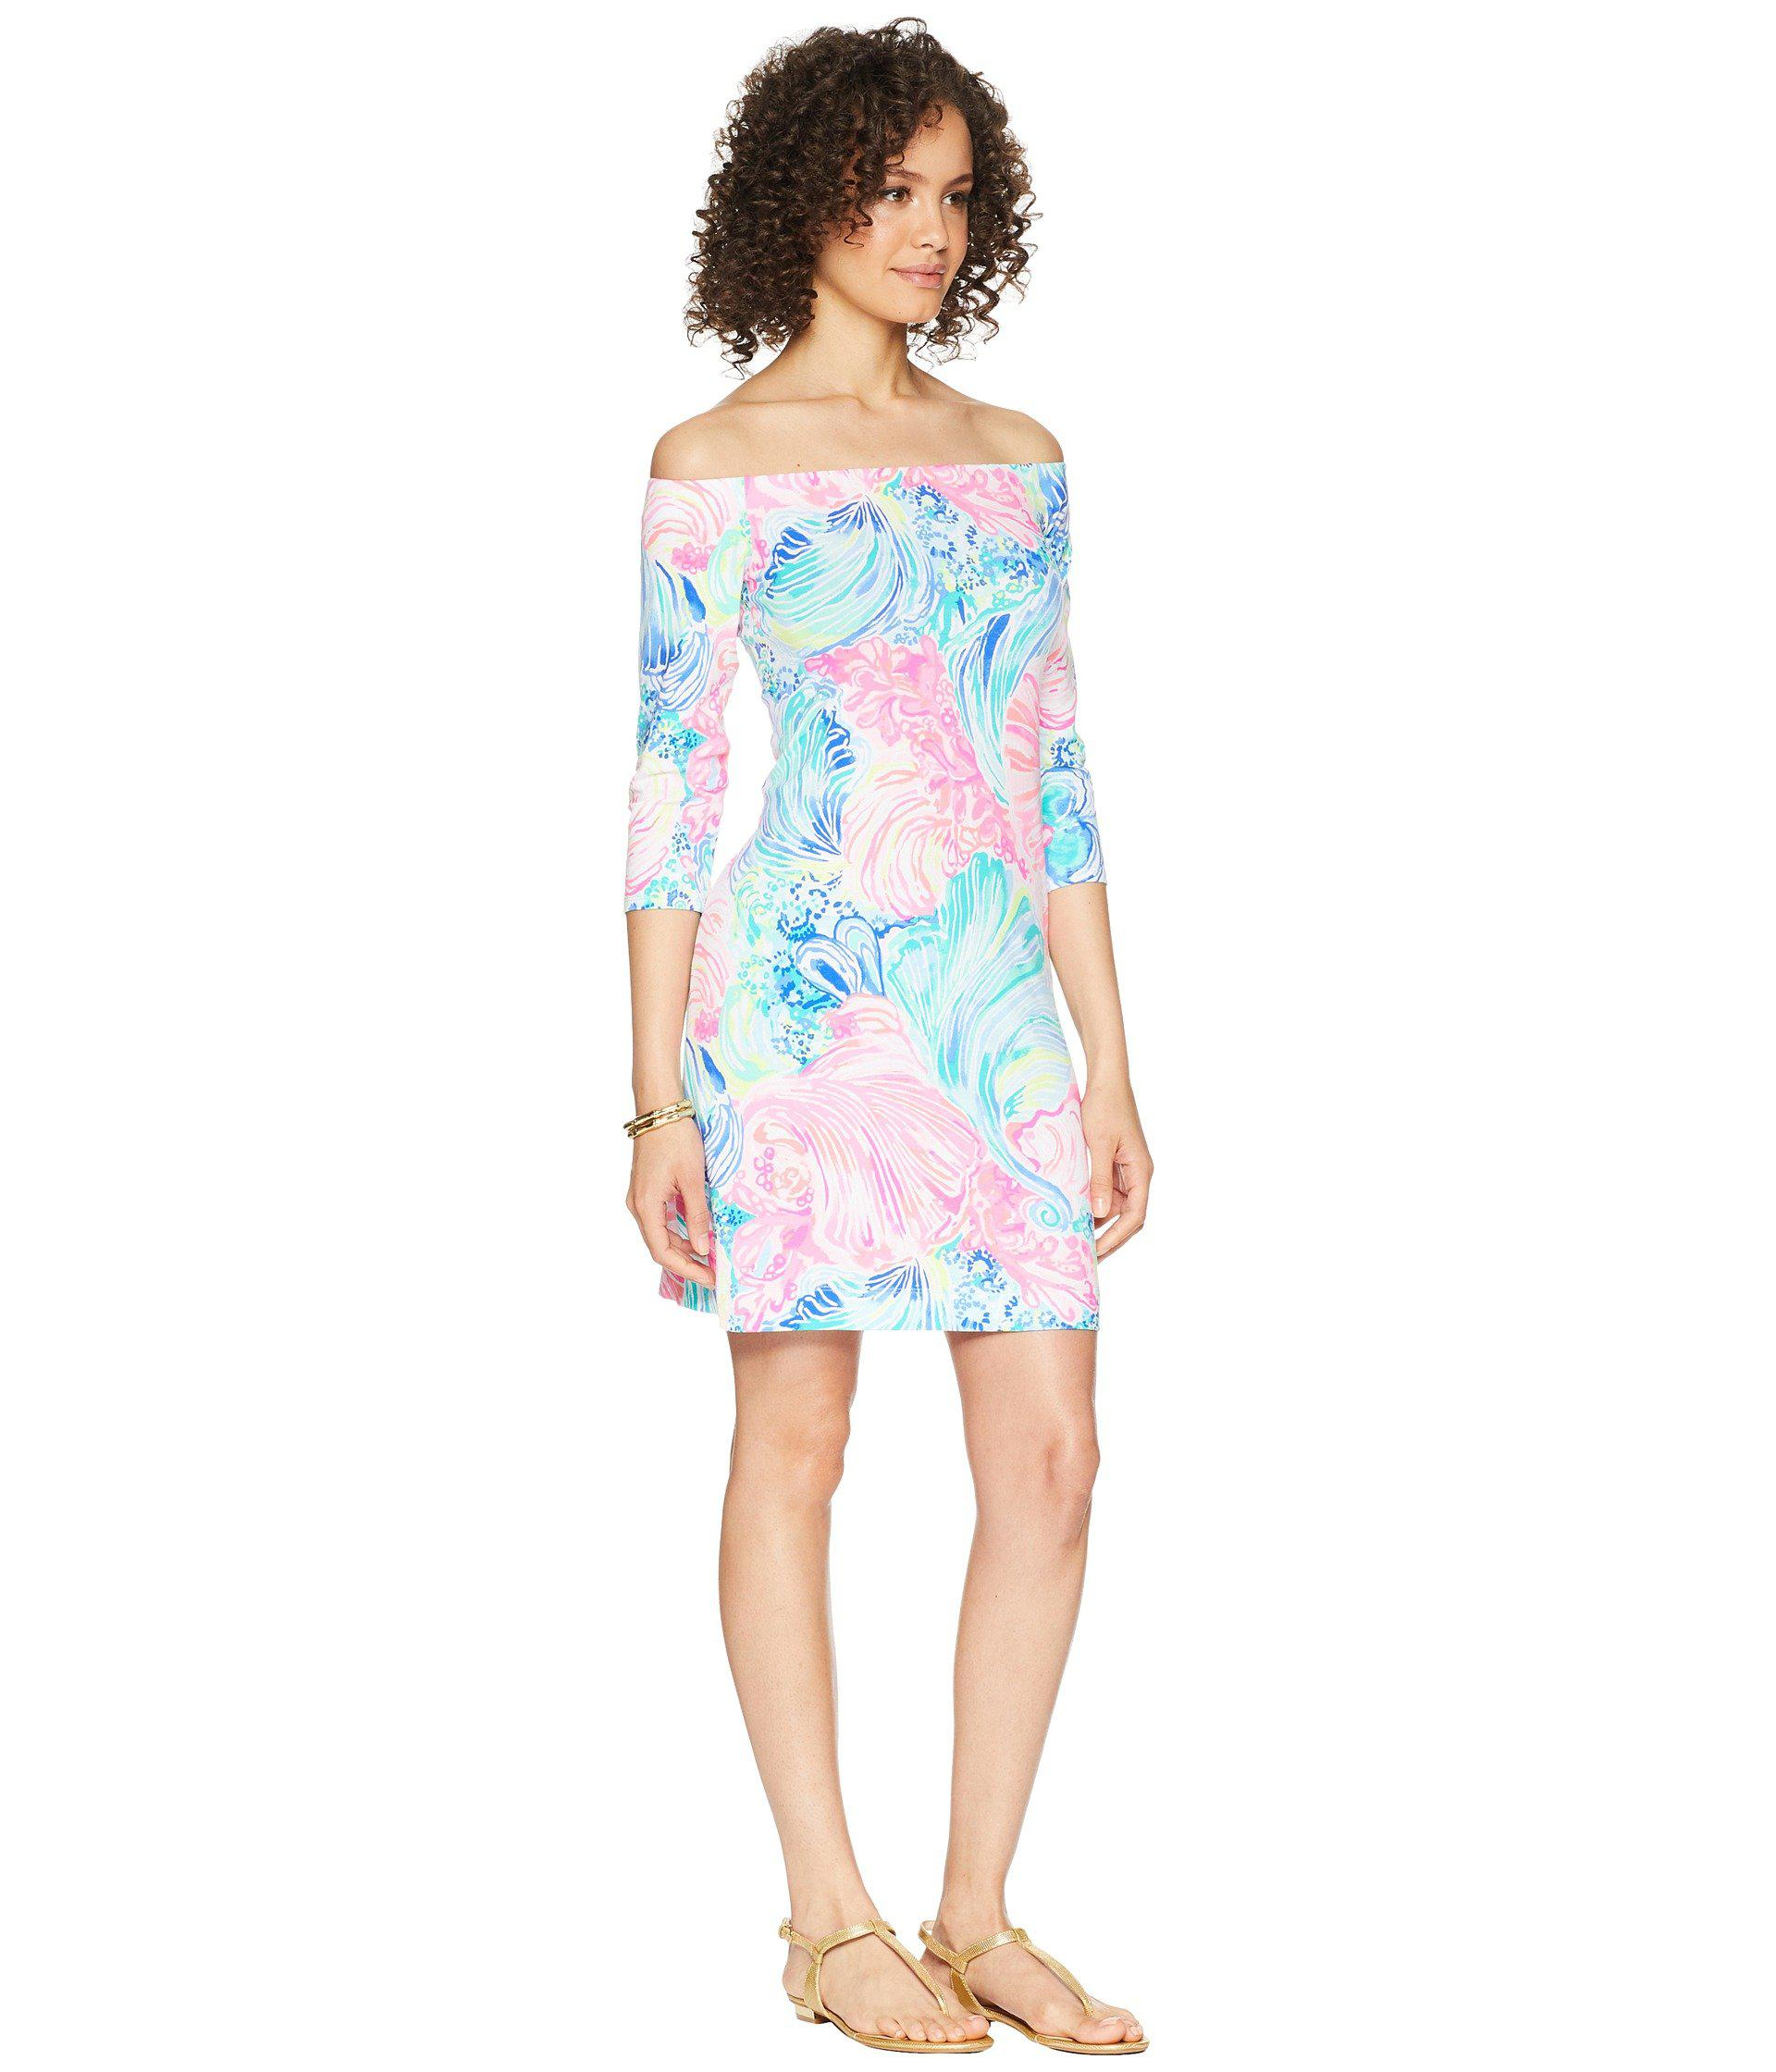 e62bfac10e1f17 Lilly Pulitzer NWT Laurana Off Shoulder Dress Bennet Blue Celestial Seas  $168 Clothing, Shoes & Accessories